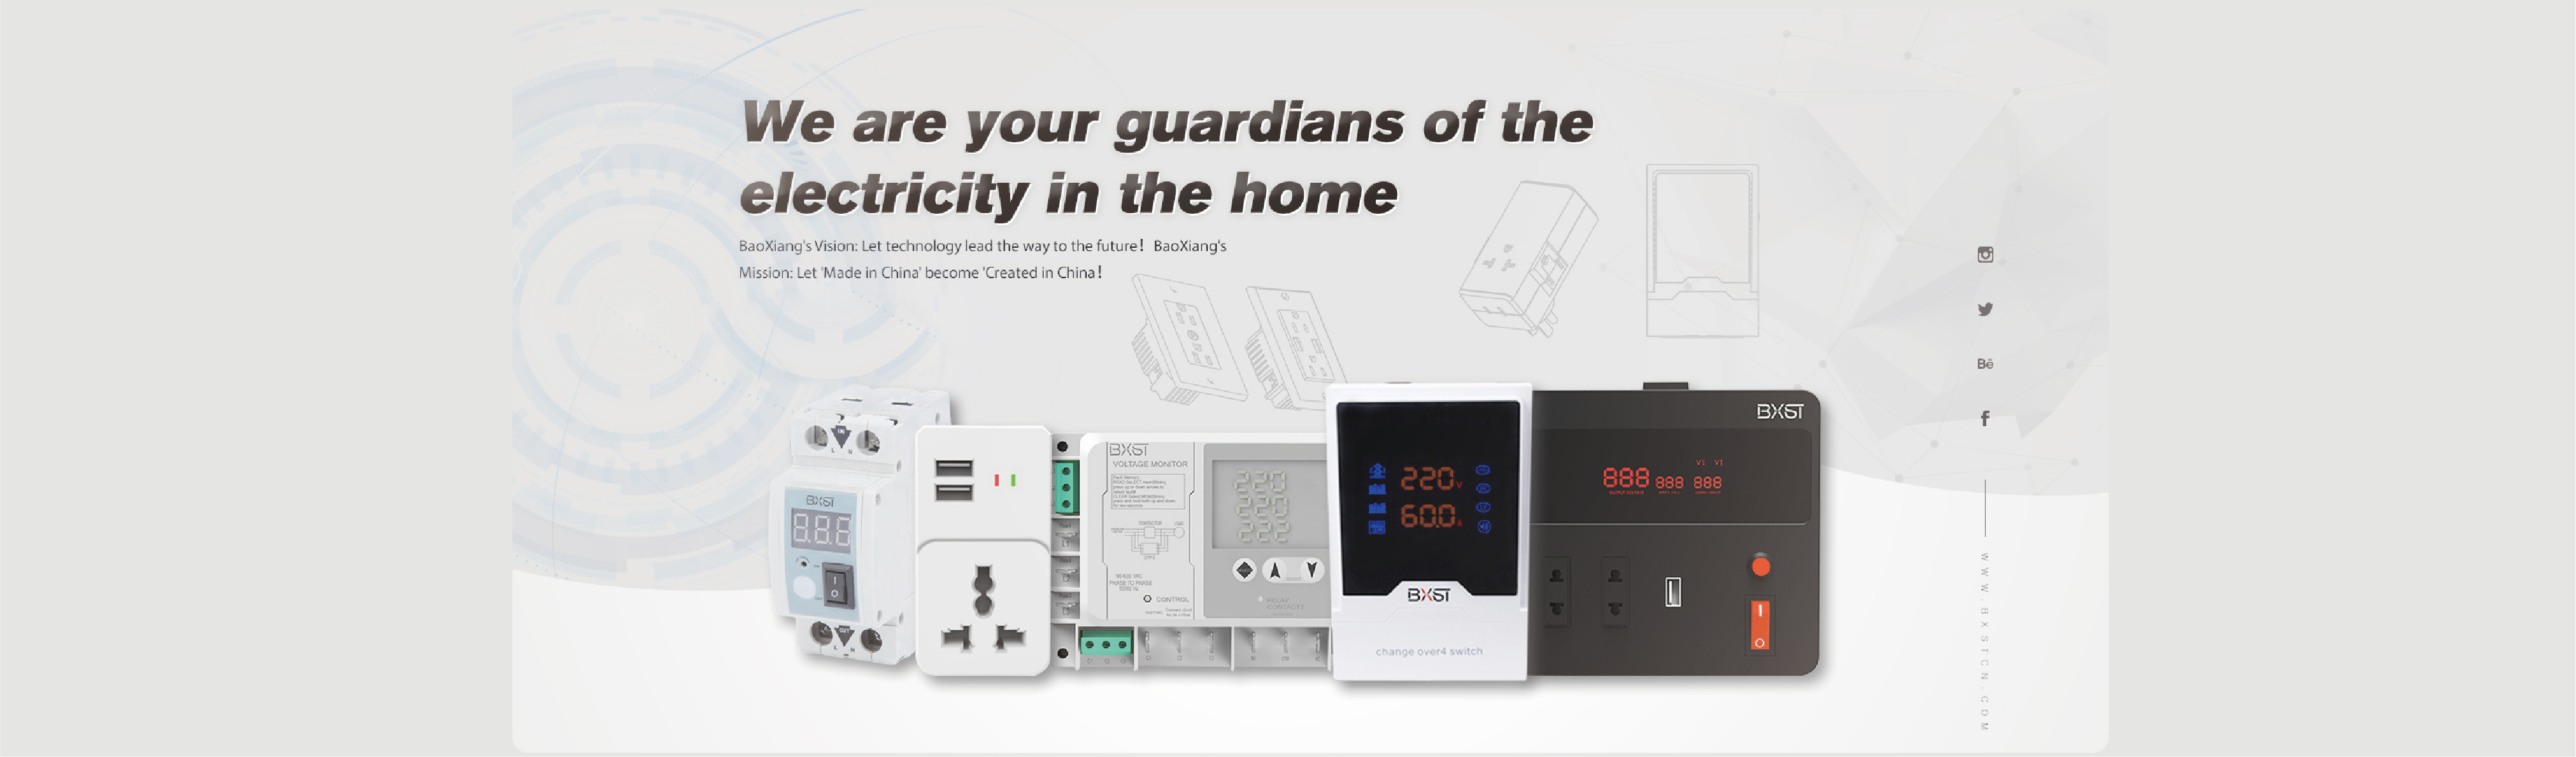 We are your guardians of the electricity in the home